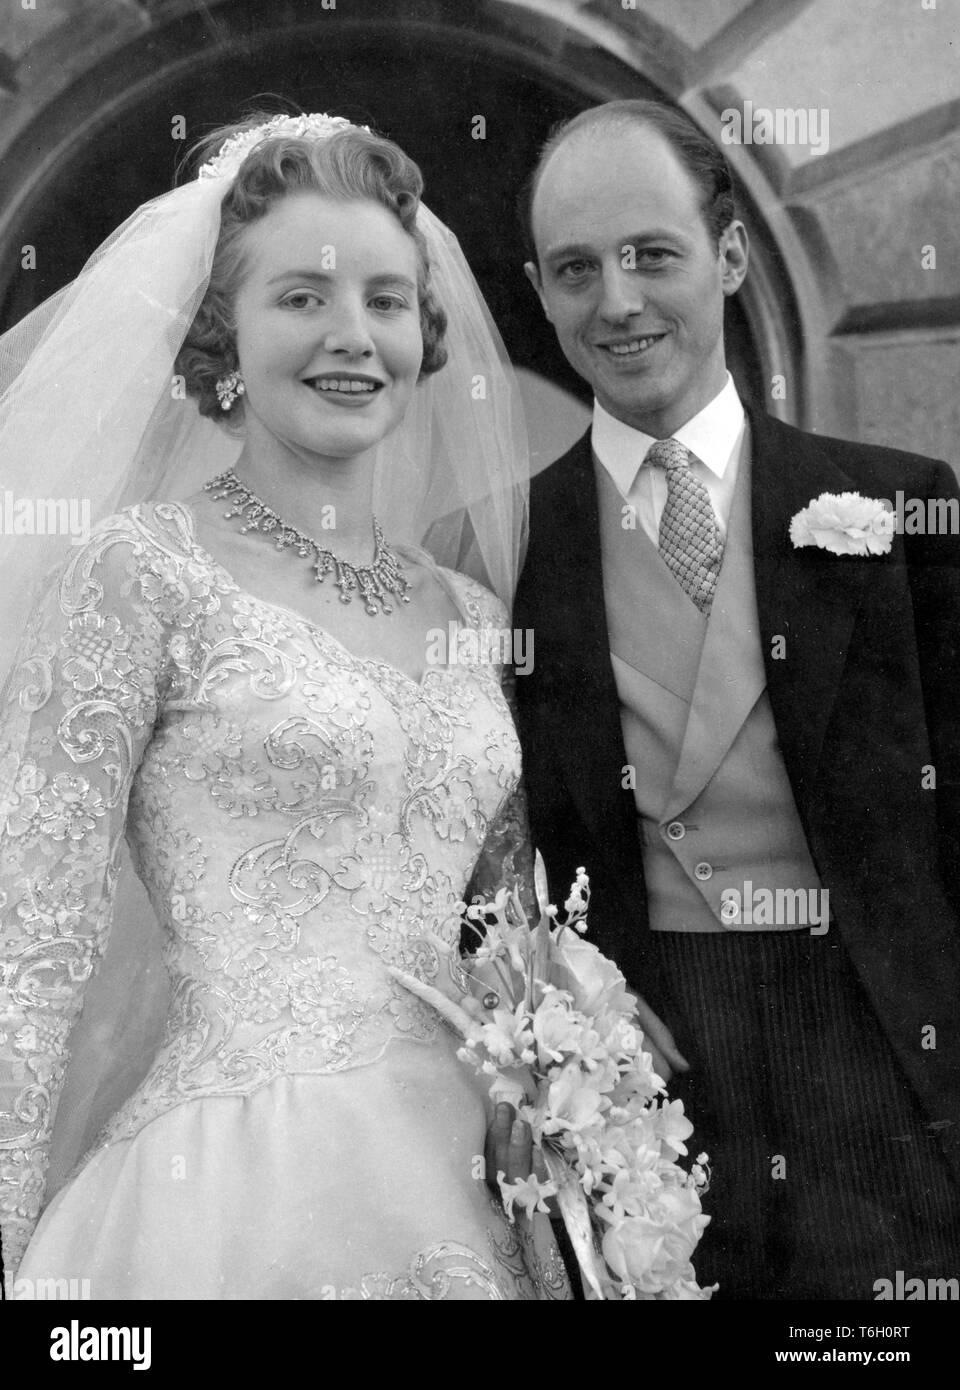 Lady Anne Coke and Colin Tennant on their wedding day as they leave the St. Withiburga's Church, Holkham, Norfolk, after their wedding ceremony.  *NEG CORRUPT, SCANNED ON CONTACT Stock Photo